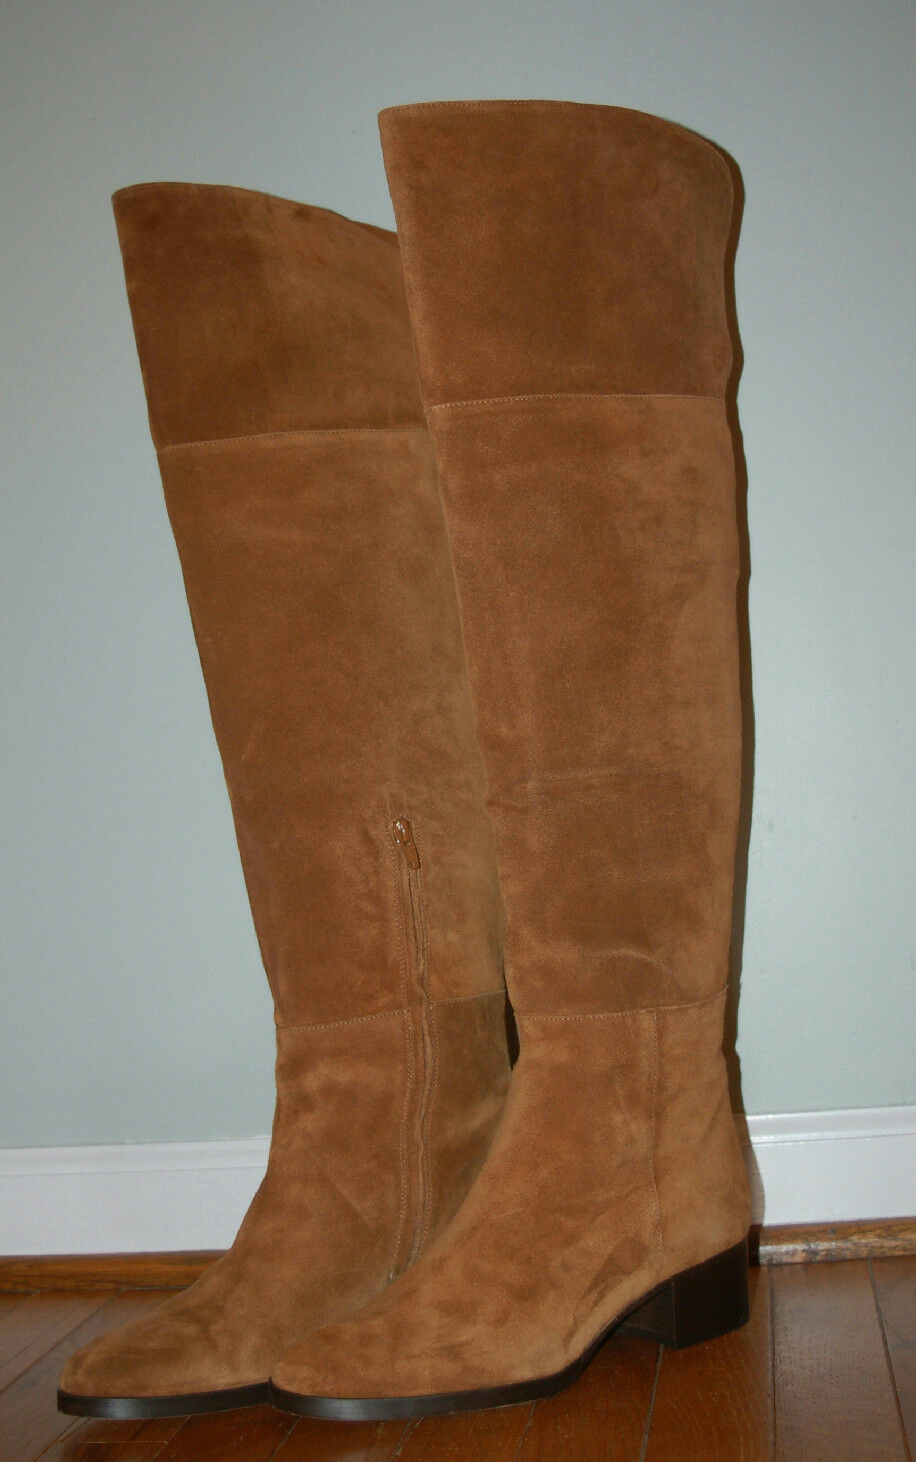 JCrew  348 348 348 Suede Stacked Over-The-Knee Boots Sz 6.5 Brown F8010 AVL 273475